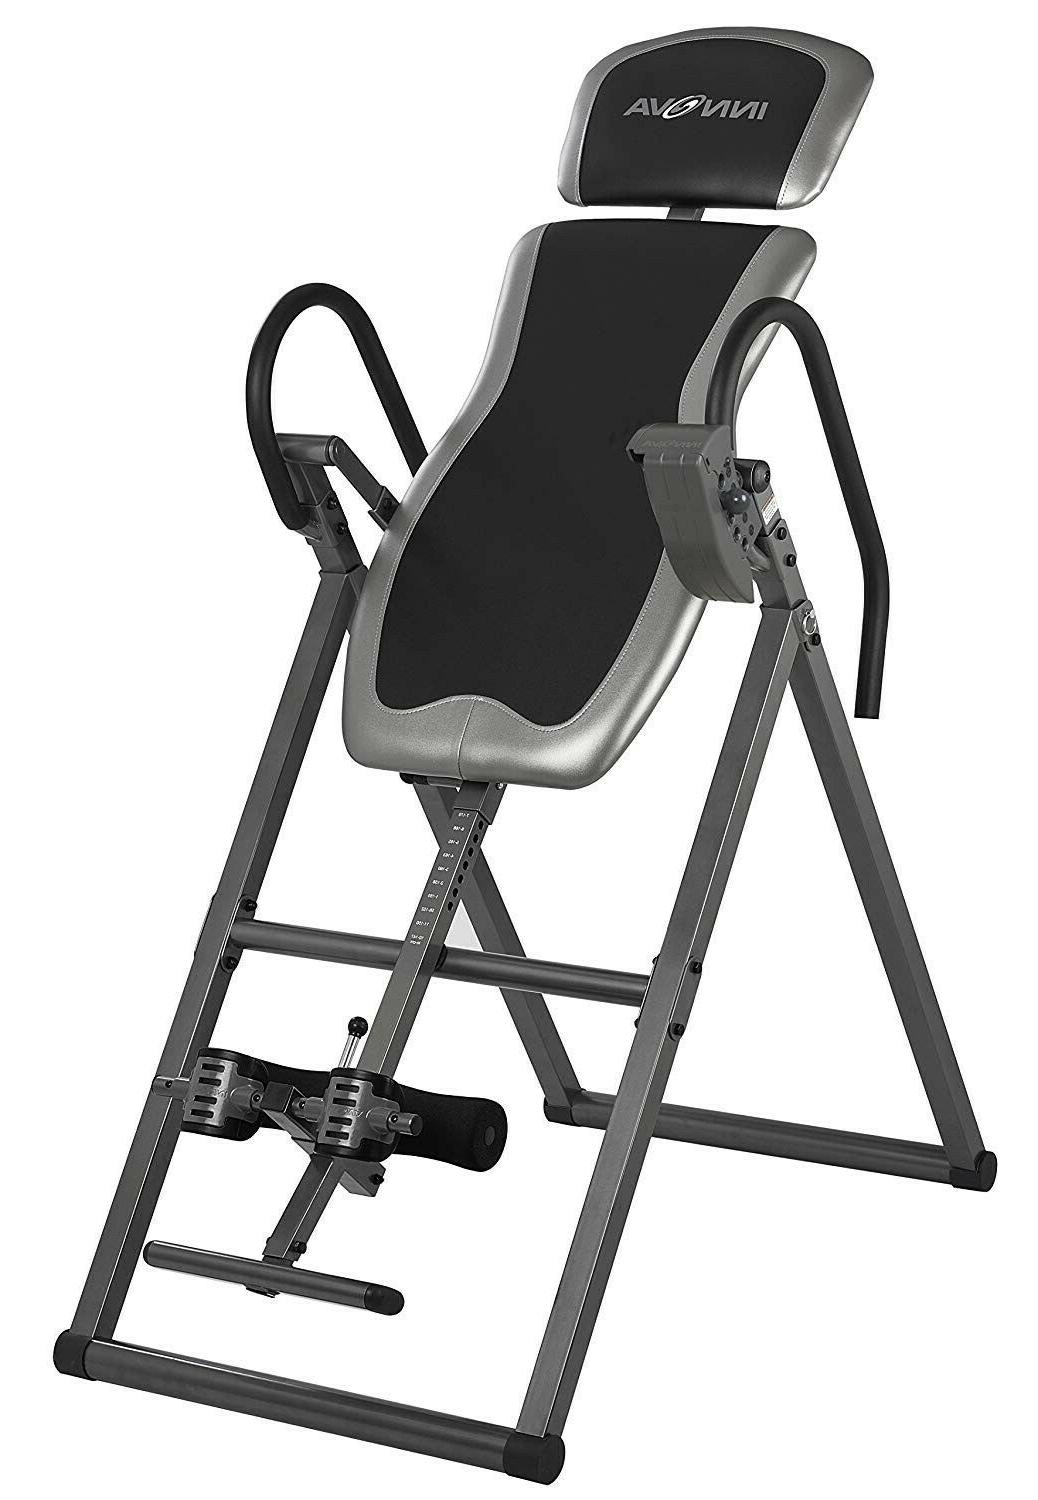 Innova Heavy Duty Inversion Table with Adjustable Headrest & Protective Cover